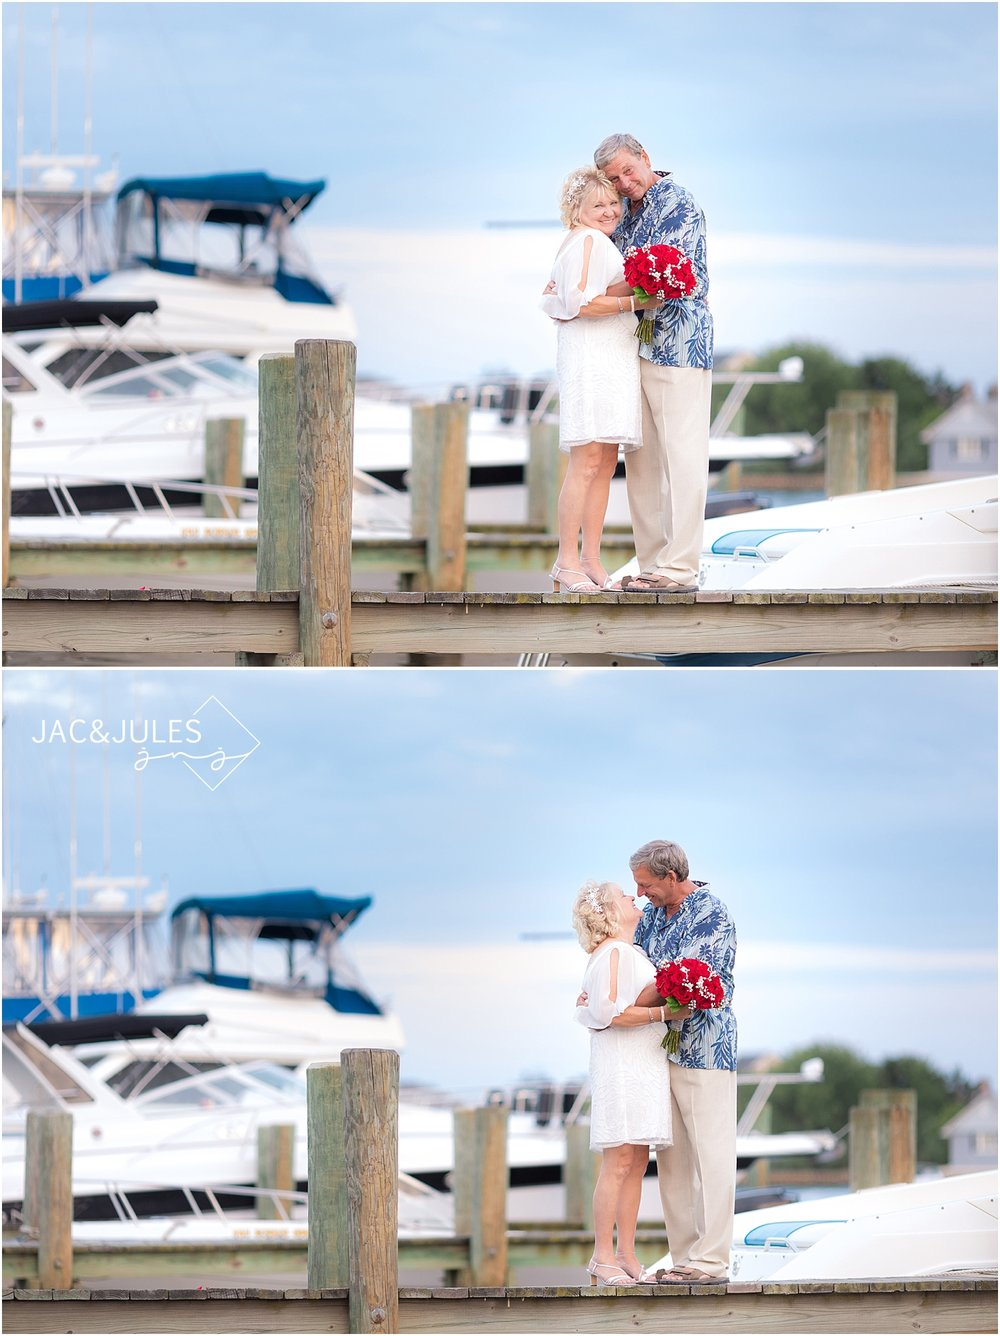 jacnjules photograph wedding at captains inn in forked river nj